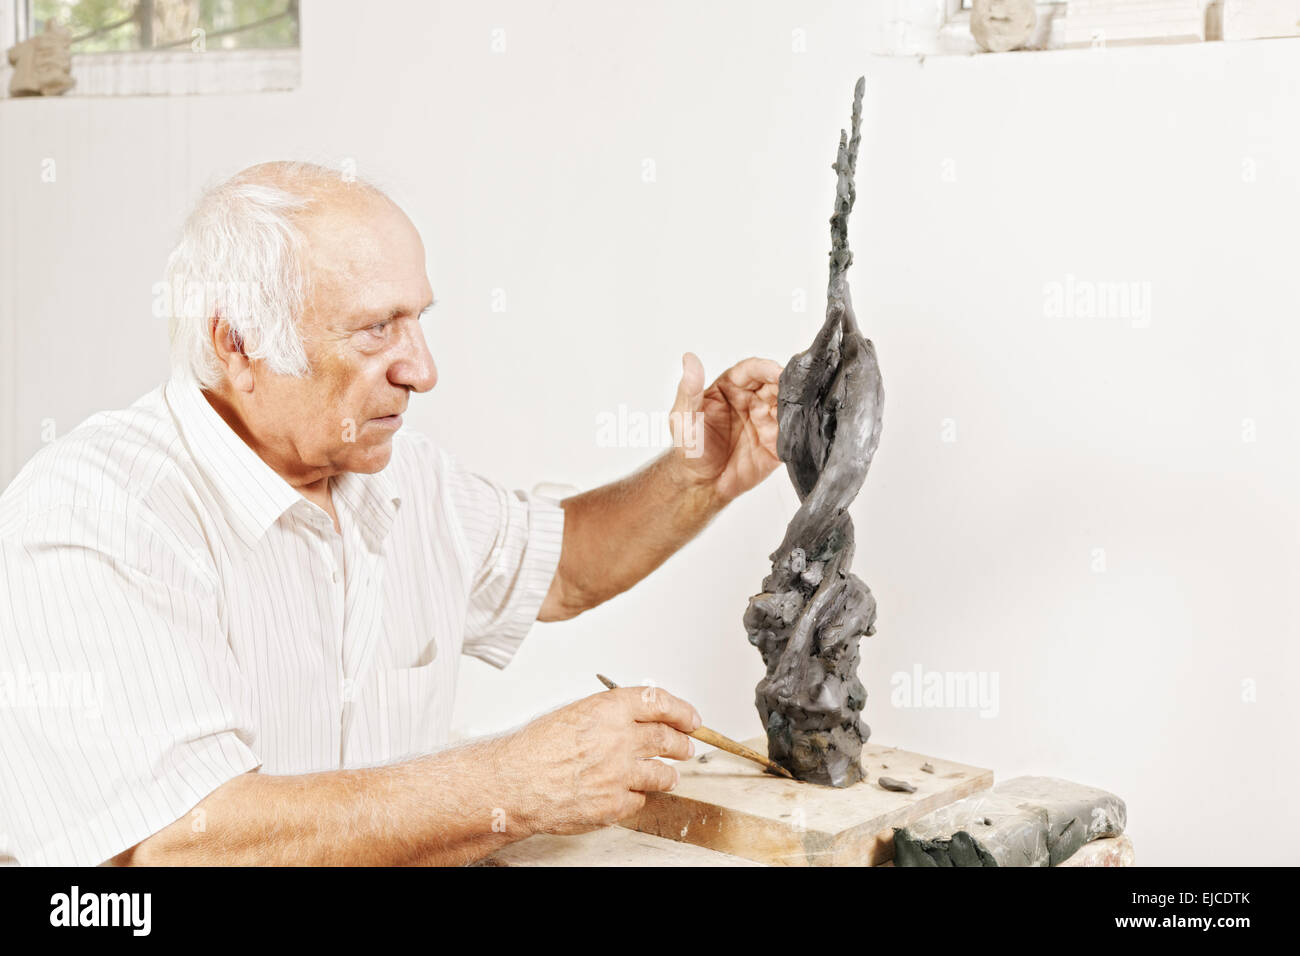 Sculptor tells about his sculpture - Stock Image